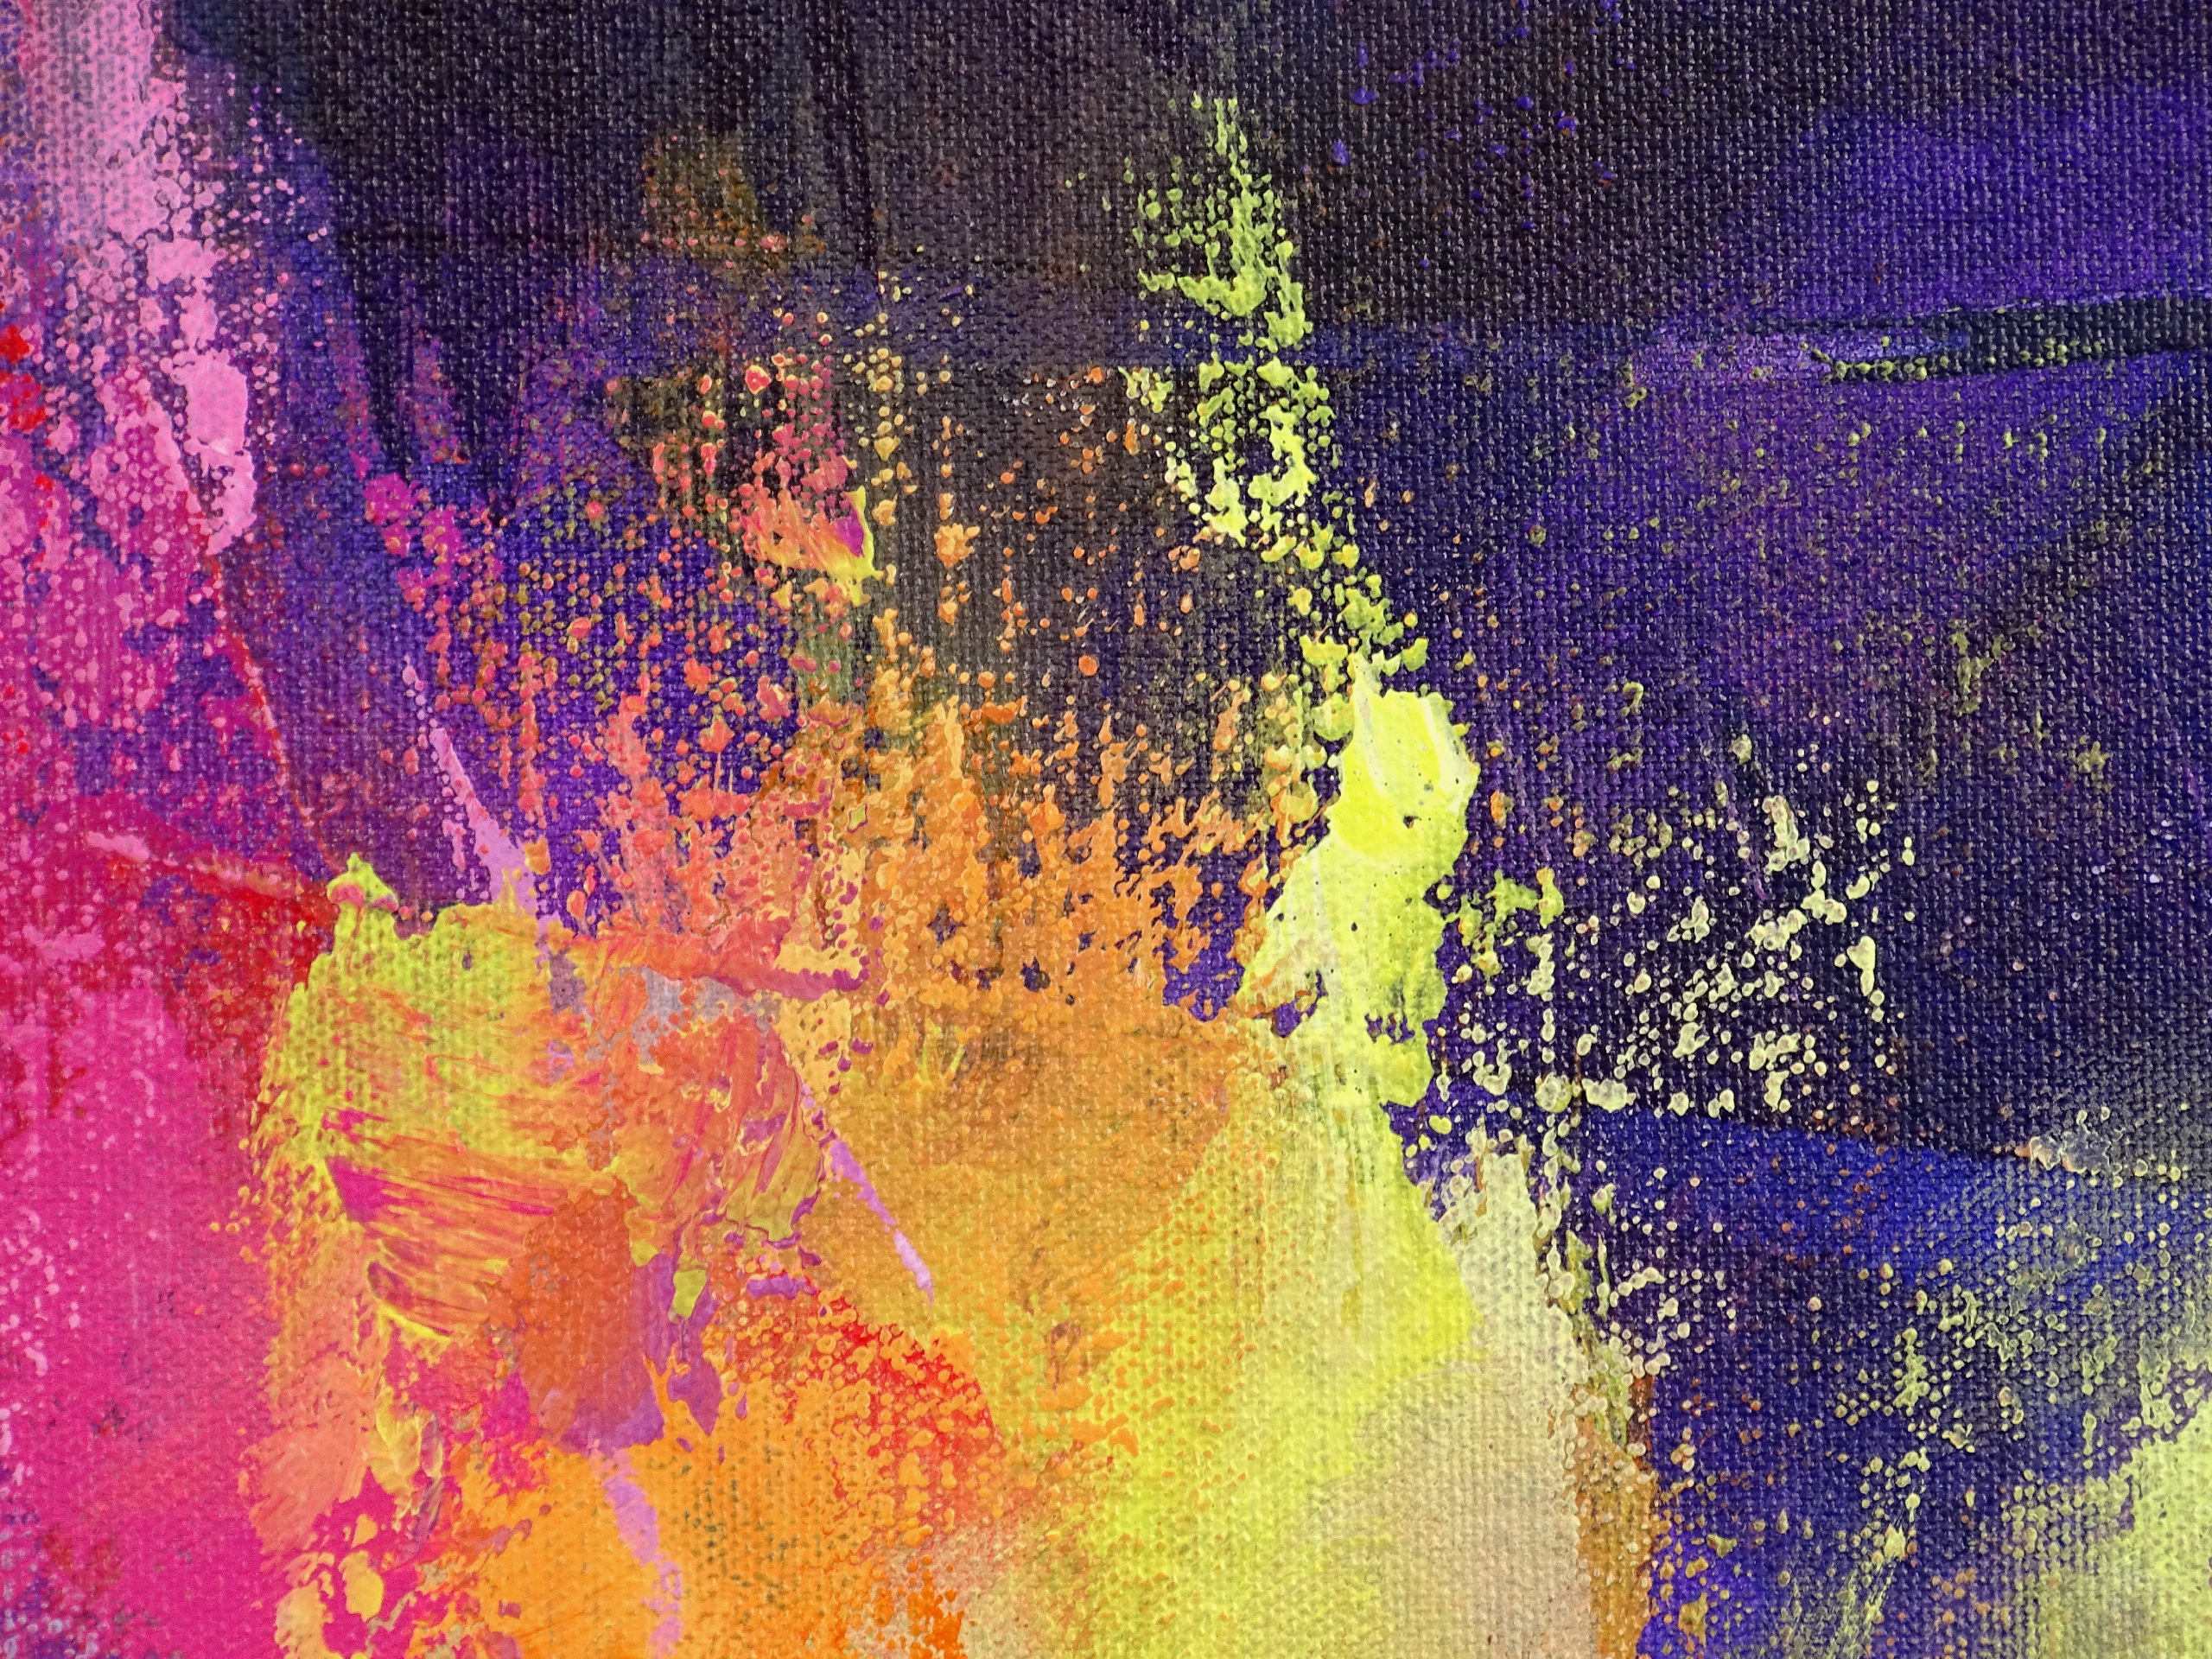 Colorful Contemporary Painting - Apparitions